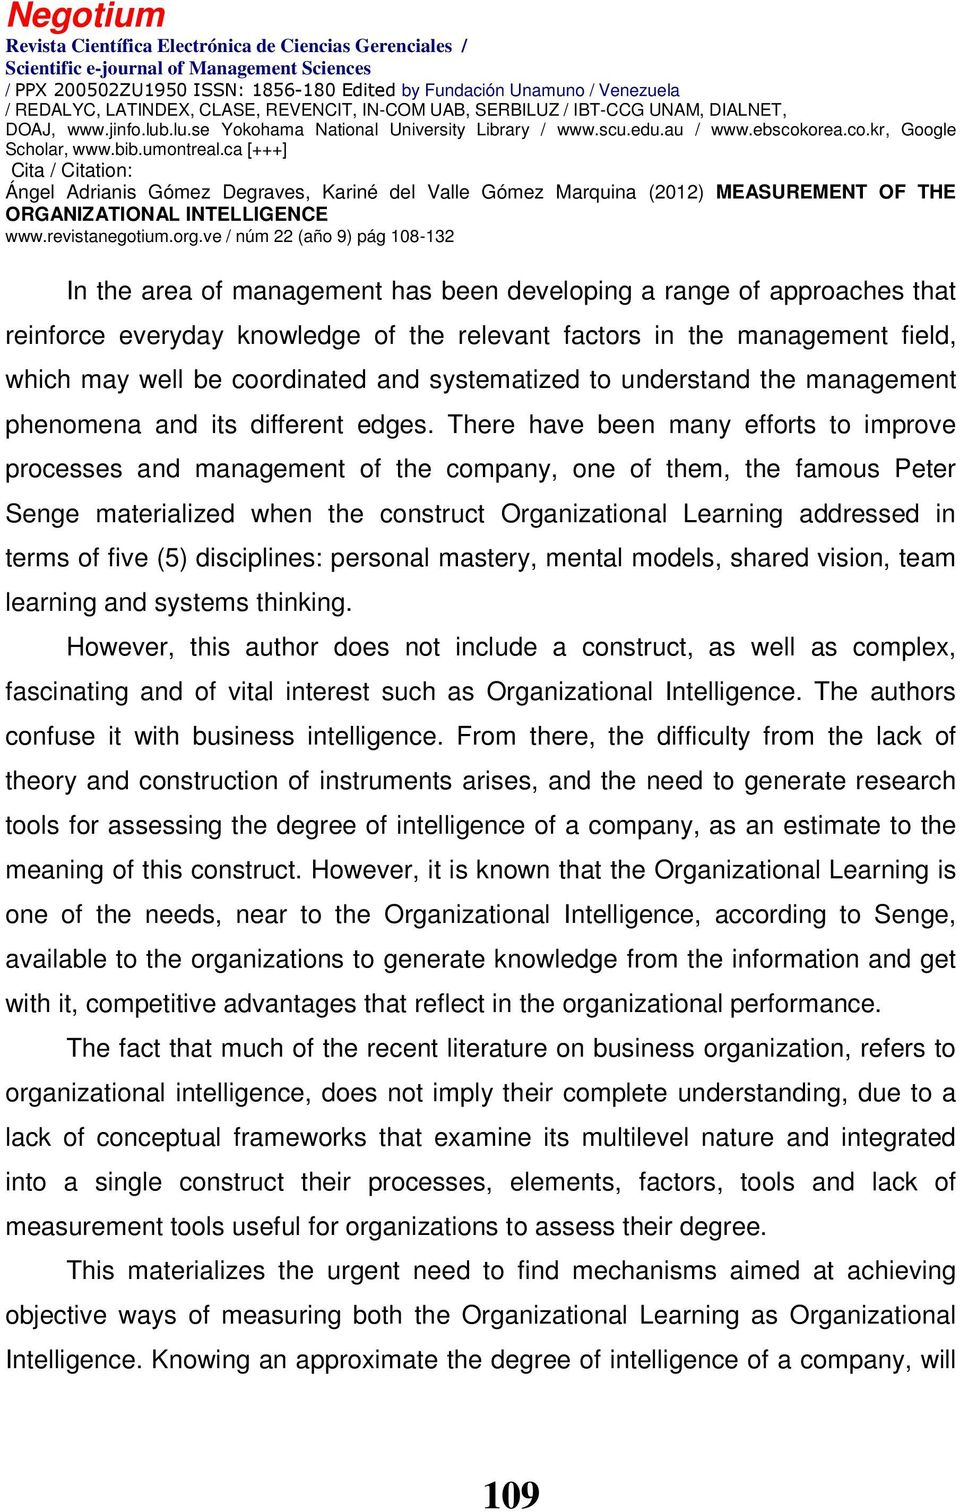 There have been many efforts to improve processes and management of the company, one of them, the famous Peter Senge materialized when the construct Organizational Learning addressed in terms of five